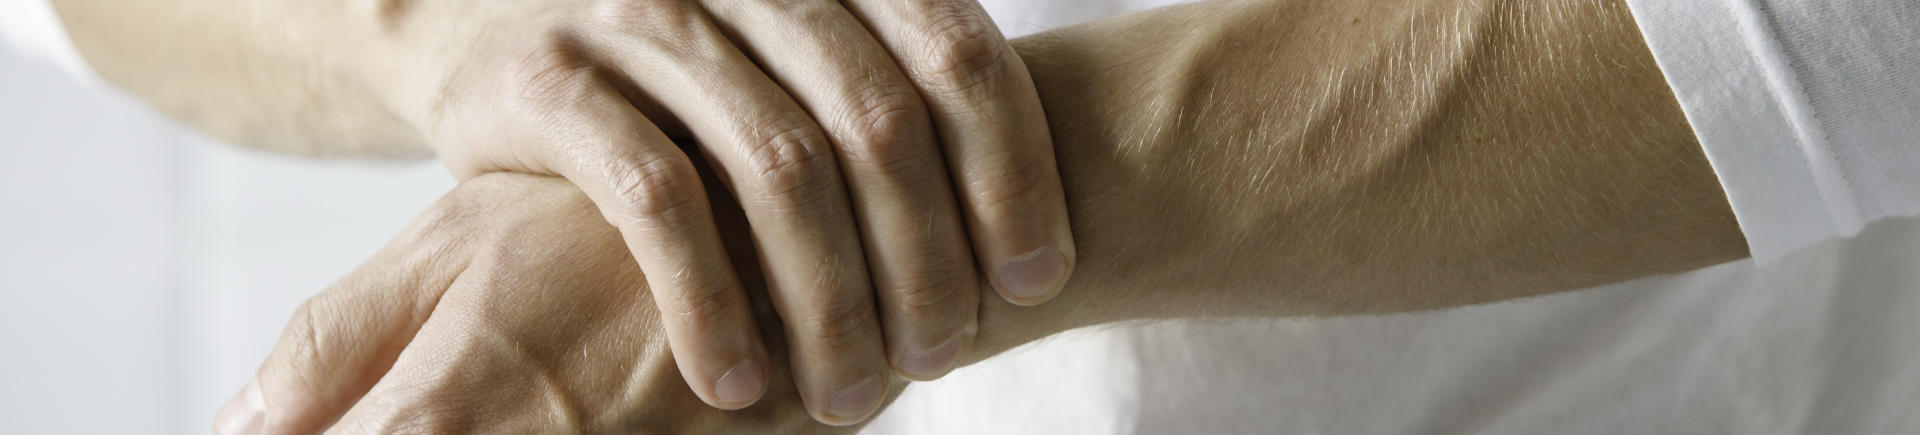 Hand/Wrist Carpal Tunnel Syndrome Pain